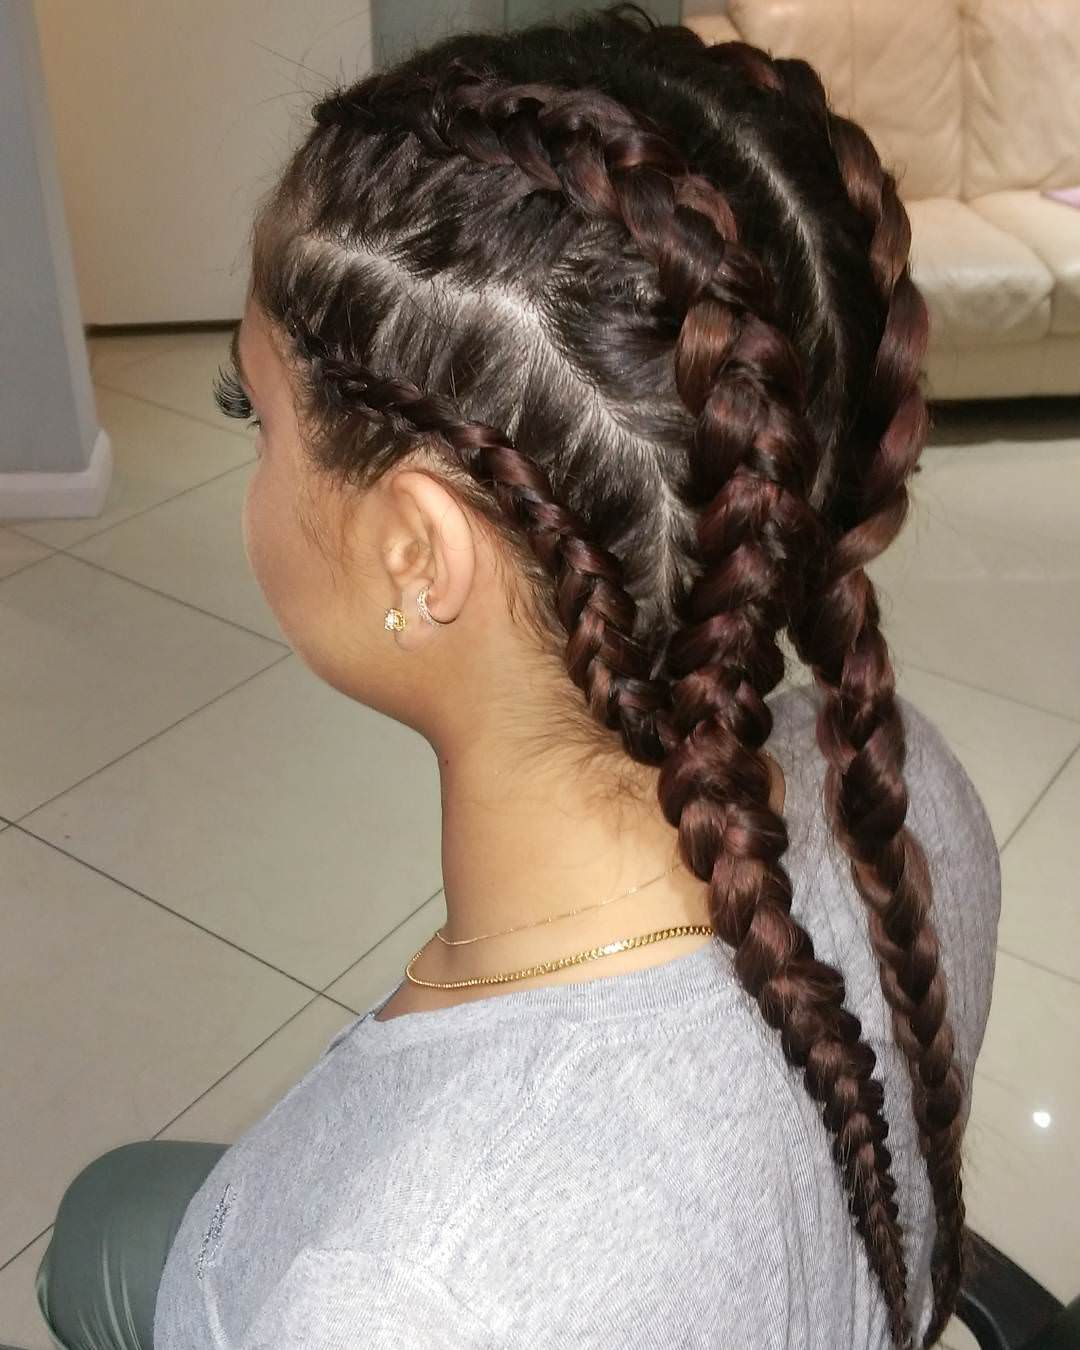 26 Goddess Braided Hairstyle Designs Design Trends